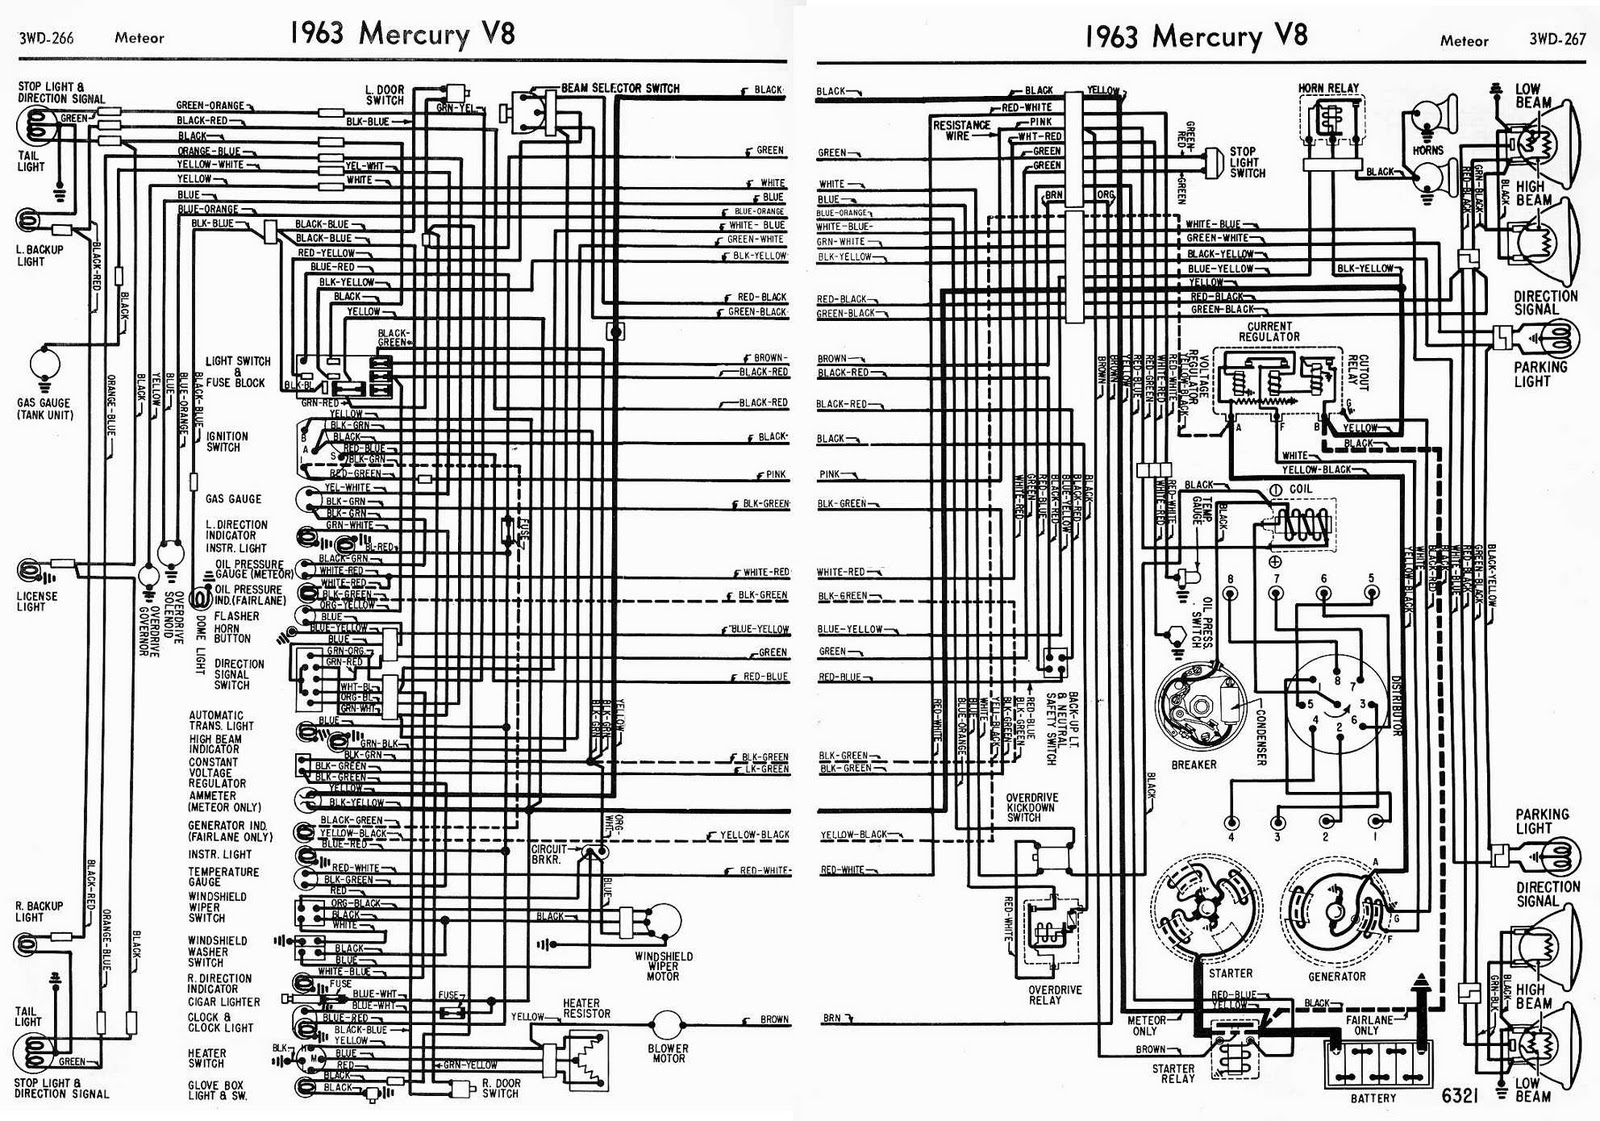 Wipercar Wiring Diagram Simple Schema 1981 Ford Library Wiper For 1989 S10 Denso 101211 1420 Suzuki